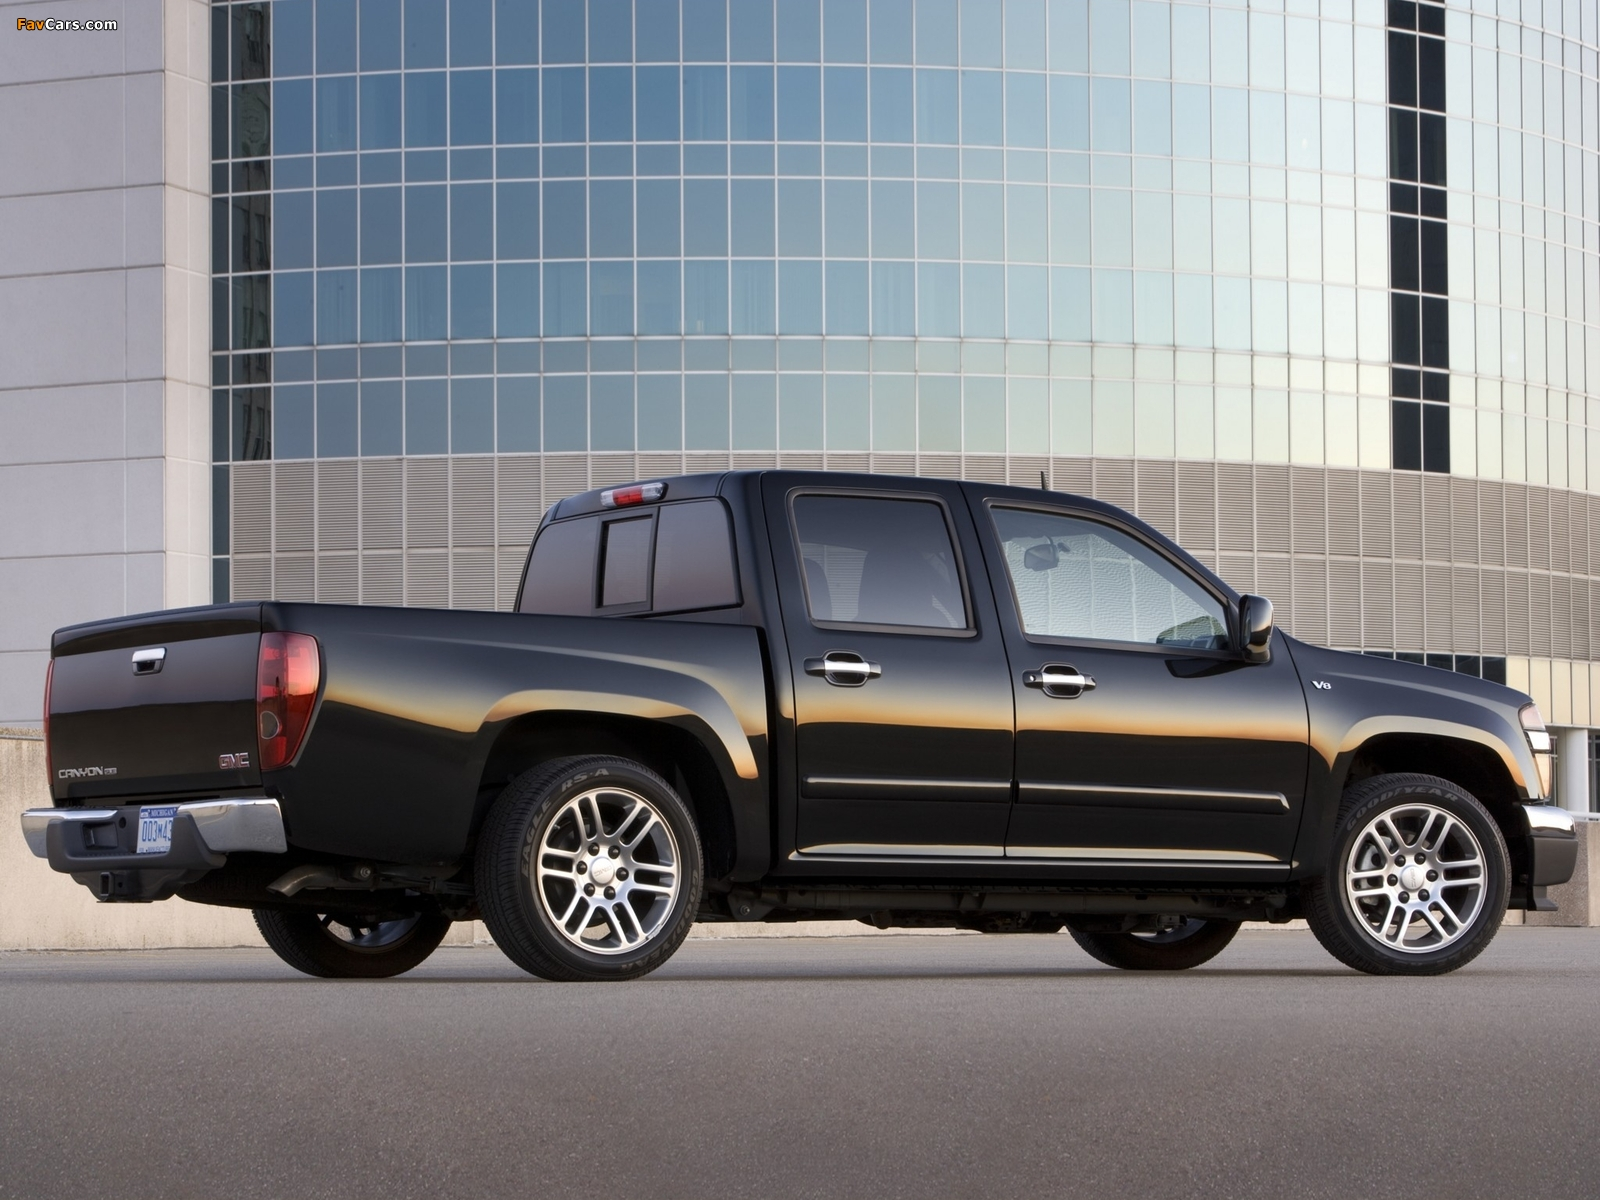 GMC Canyon Crew Cab Sport Suspension Package 2006 photos (1600 x 1200)